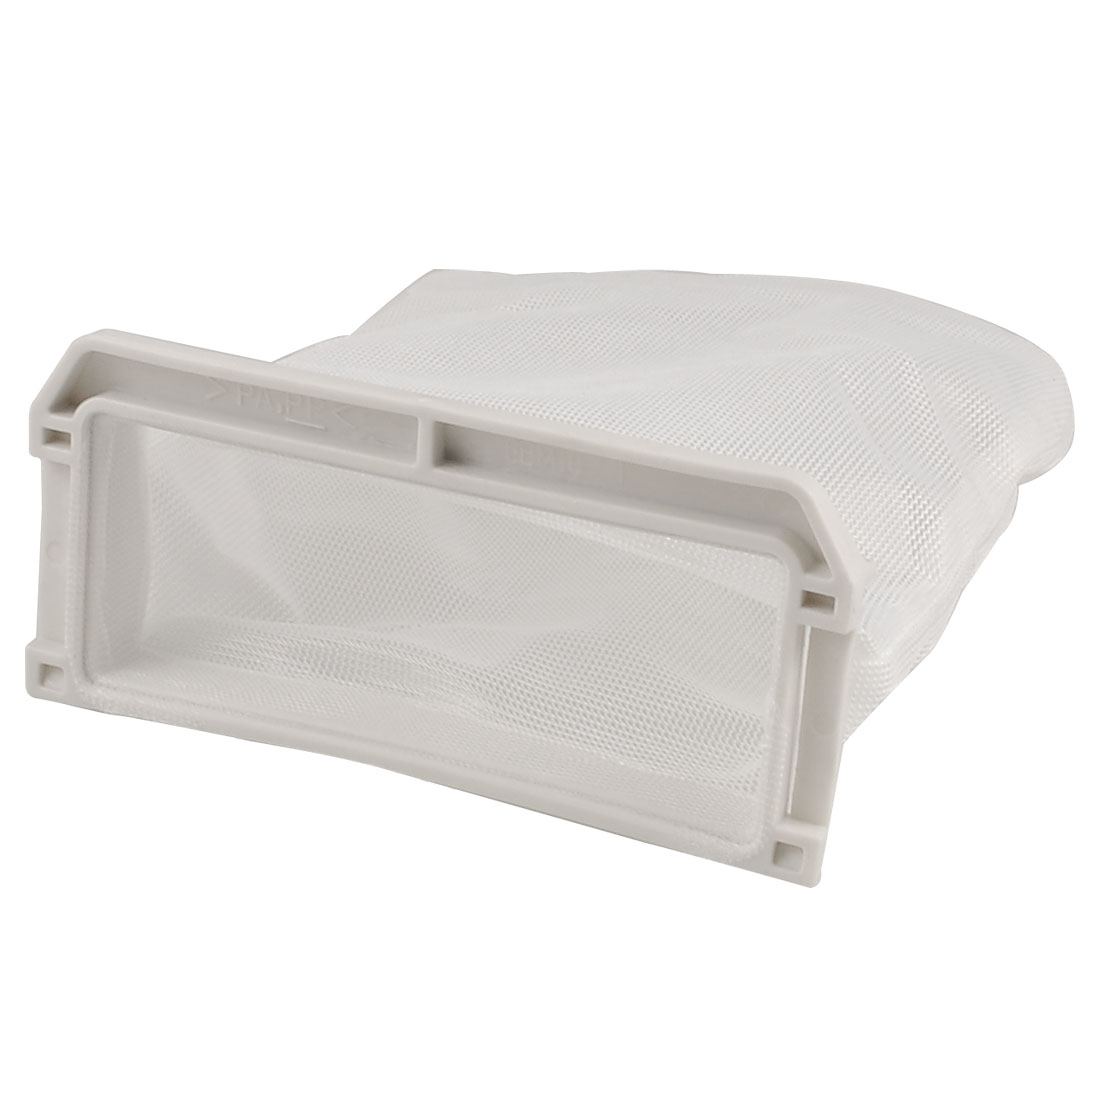 Washing Machine White Plastic Nylon Filter 11cm x 13cm Meshy Bag